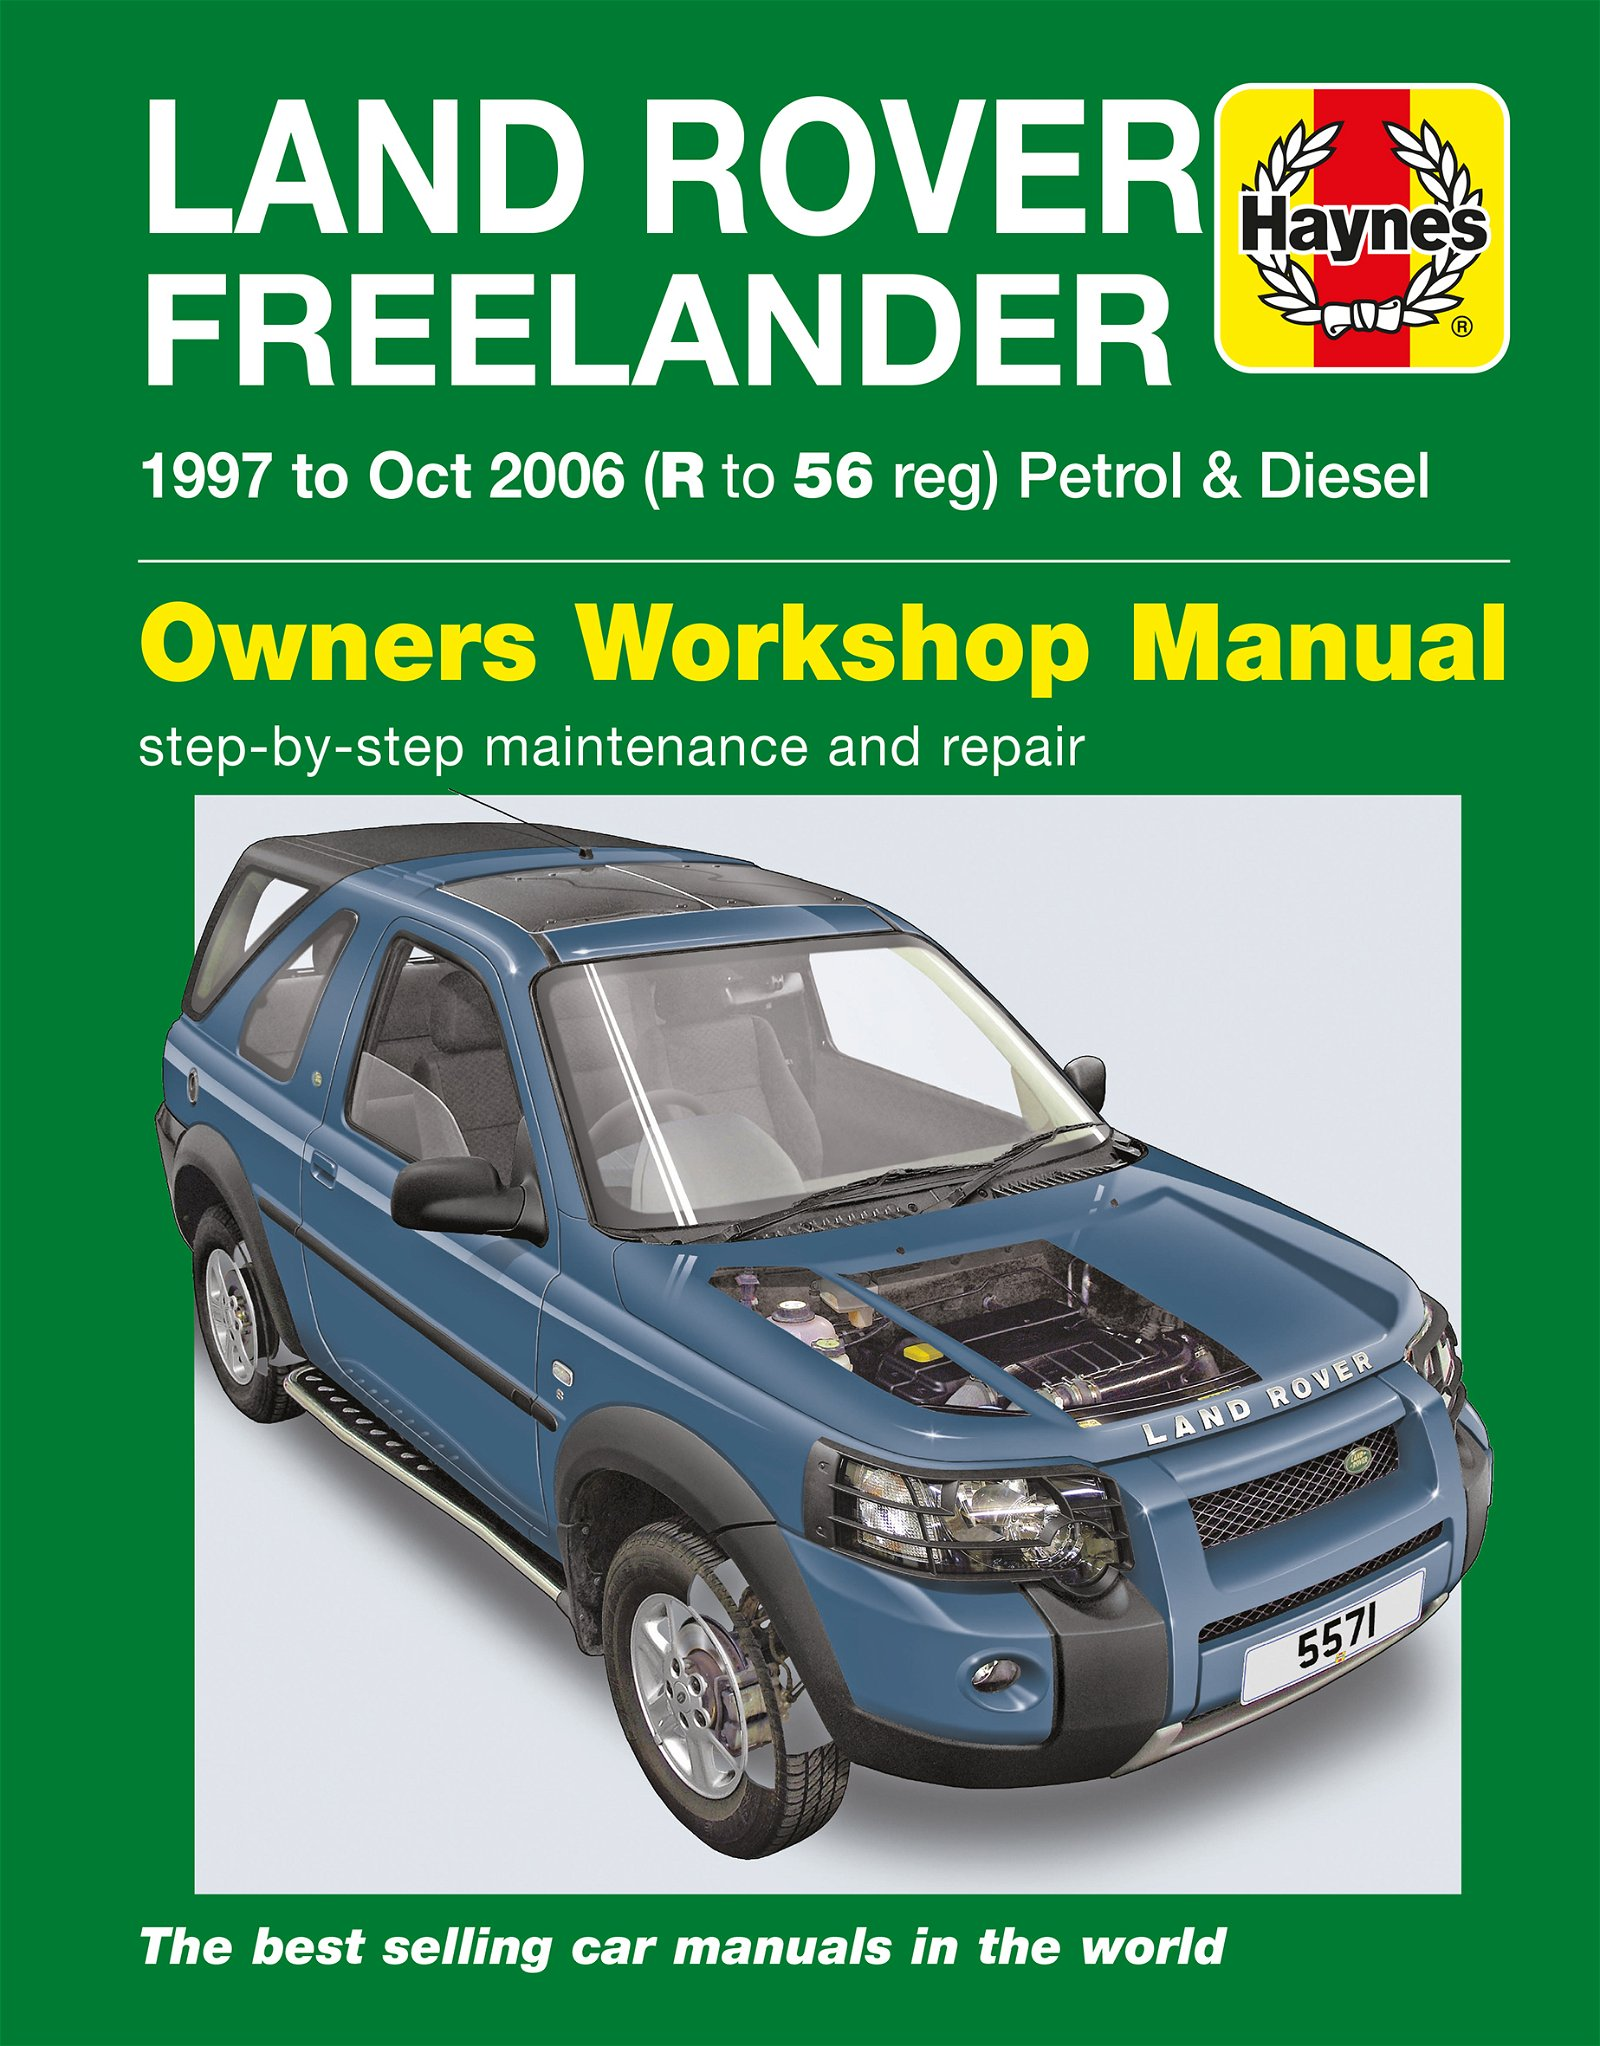 [Manuel UK en Anglais] Land Rover Freelander  (97 - Oct 06)  R to 56